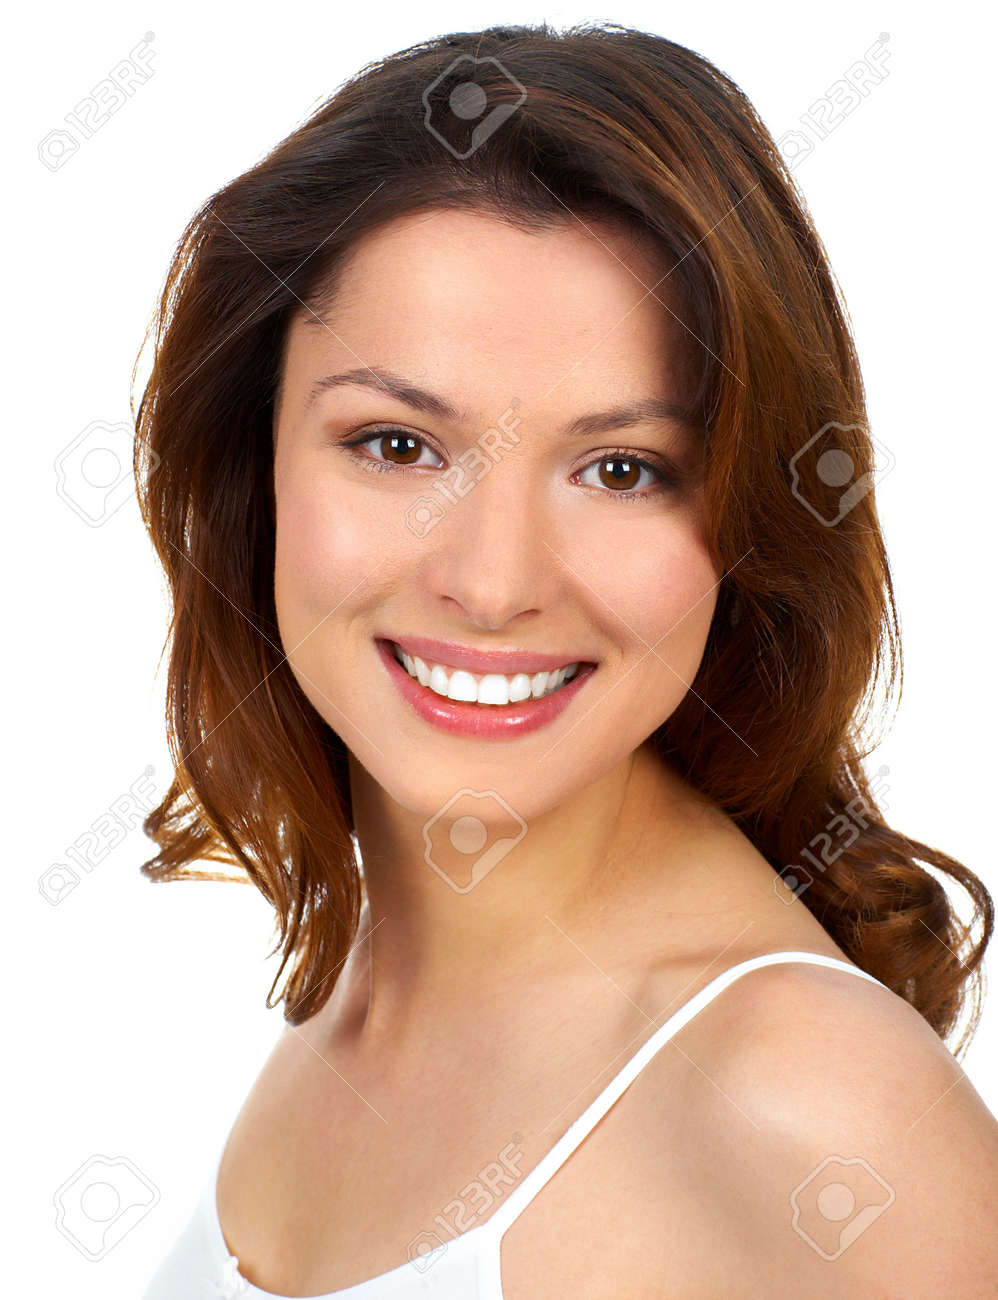 Beautiful young woman smiling. Isolated over white background - 3754984